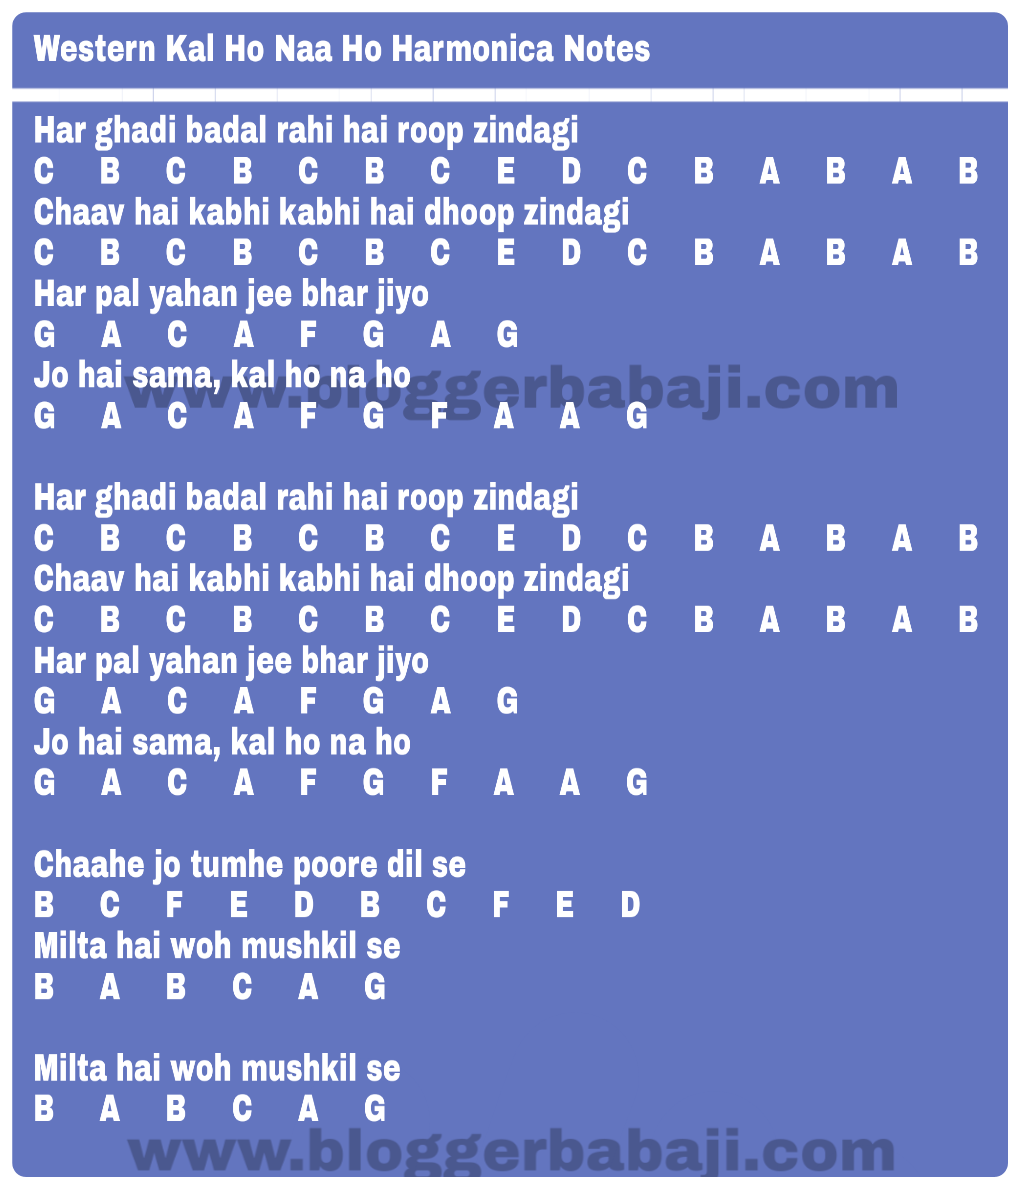 Western Kal Ho Naa Ho Harmonica Notations Notes Key Tabs There are a lot of tonic notes. western kal ho naa ho harmonica